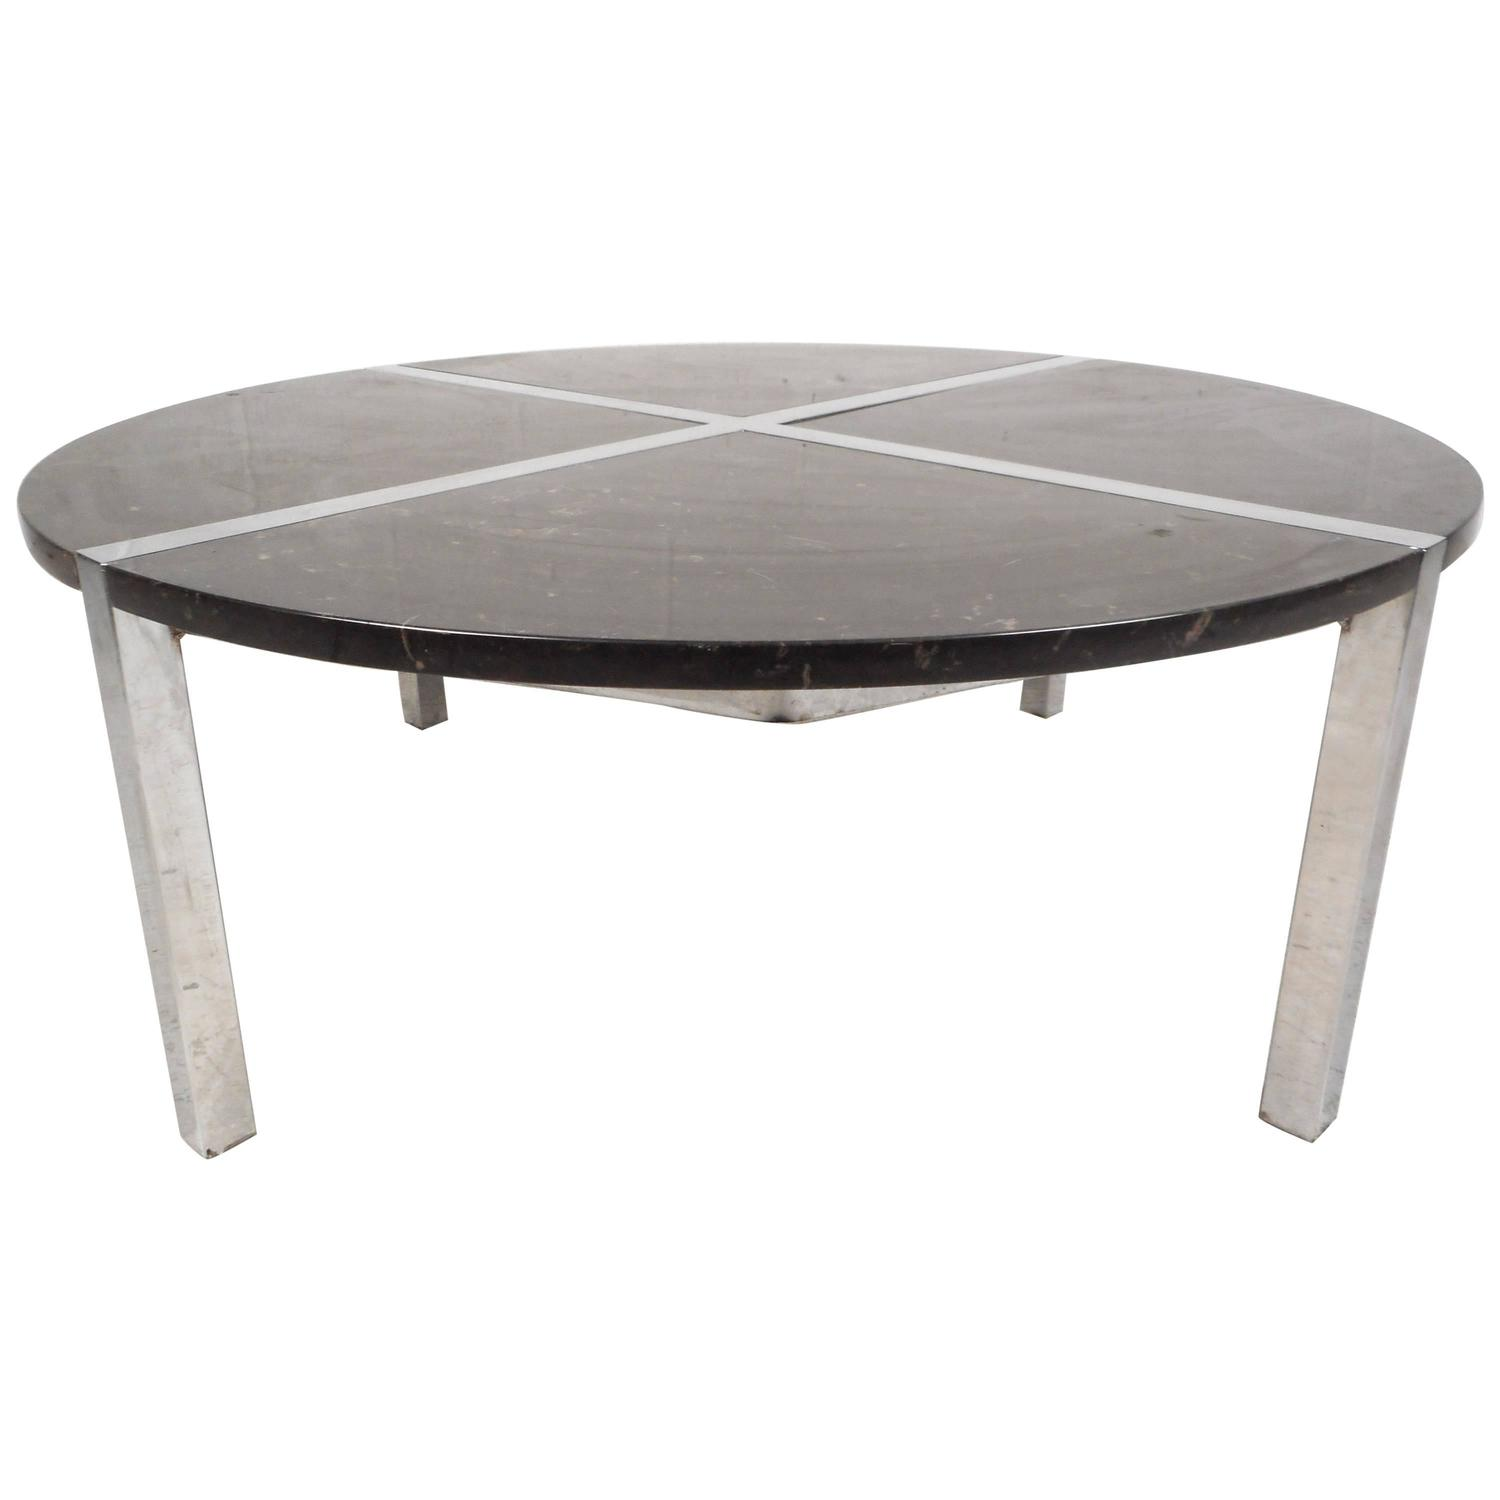 Mid Century Modern Marble Table: Mid-Century Modern Chrome And Marble Top Coffee Table For